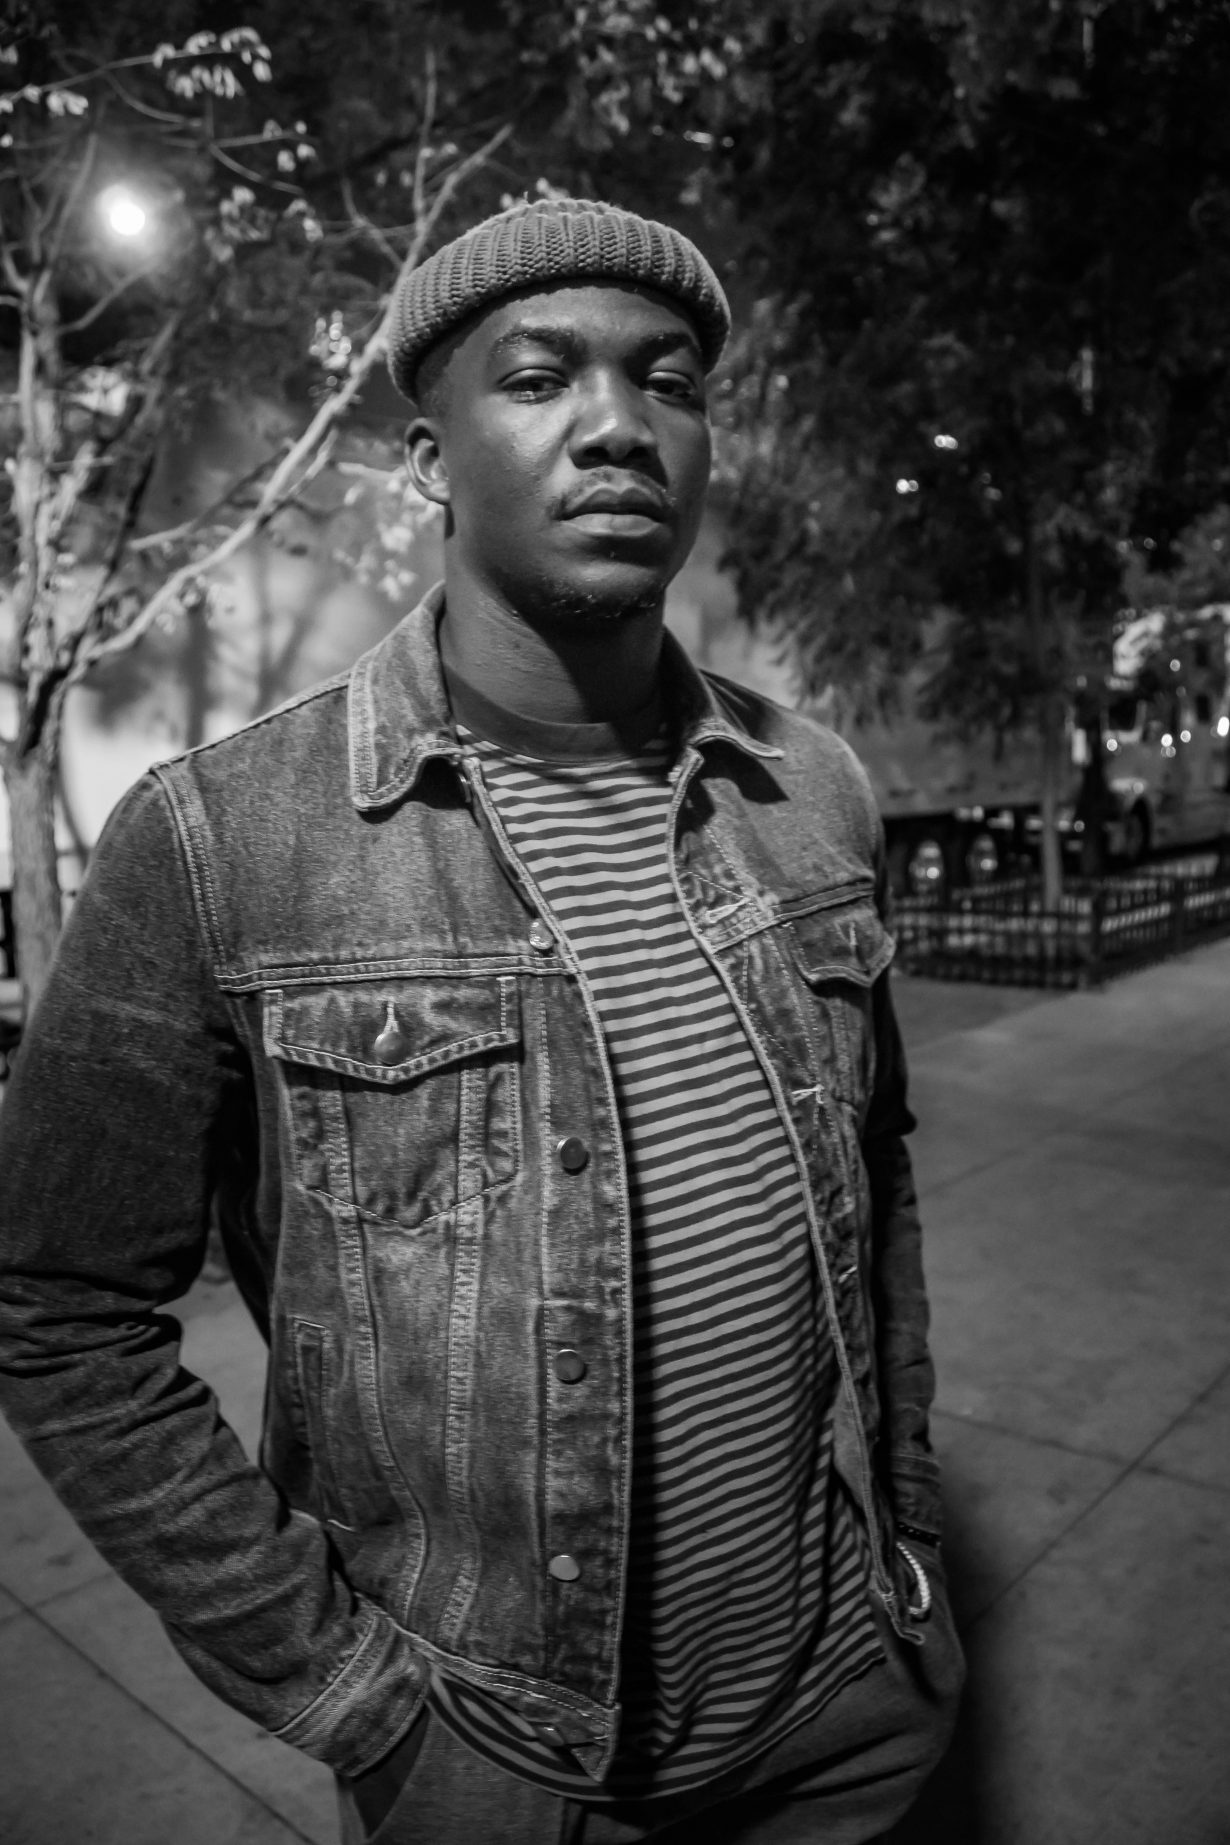 Jacob Banks Lollapalooza 2017 Photo ImKevinBaker 1230x1845 Photos: Chicago Music Photo Gallery of 2017 Take a Look Through Our Lens